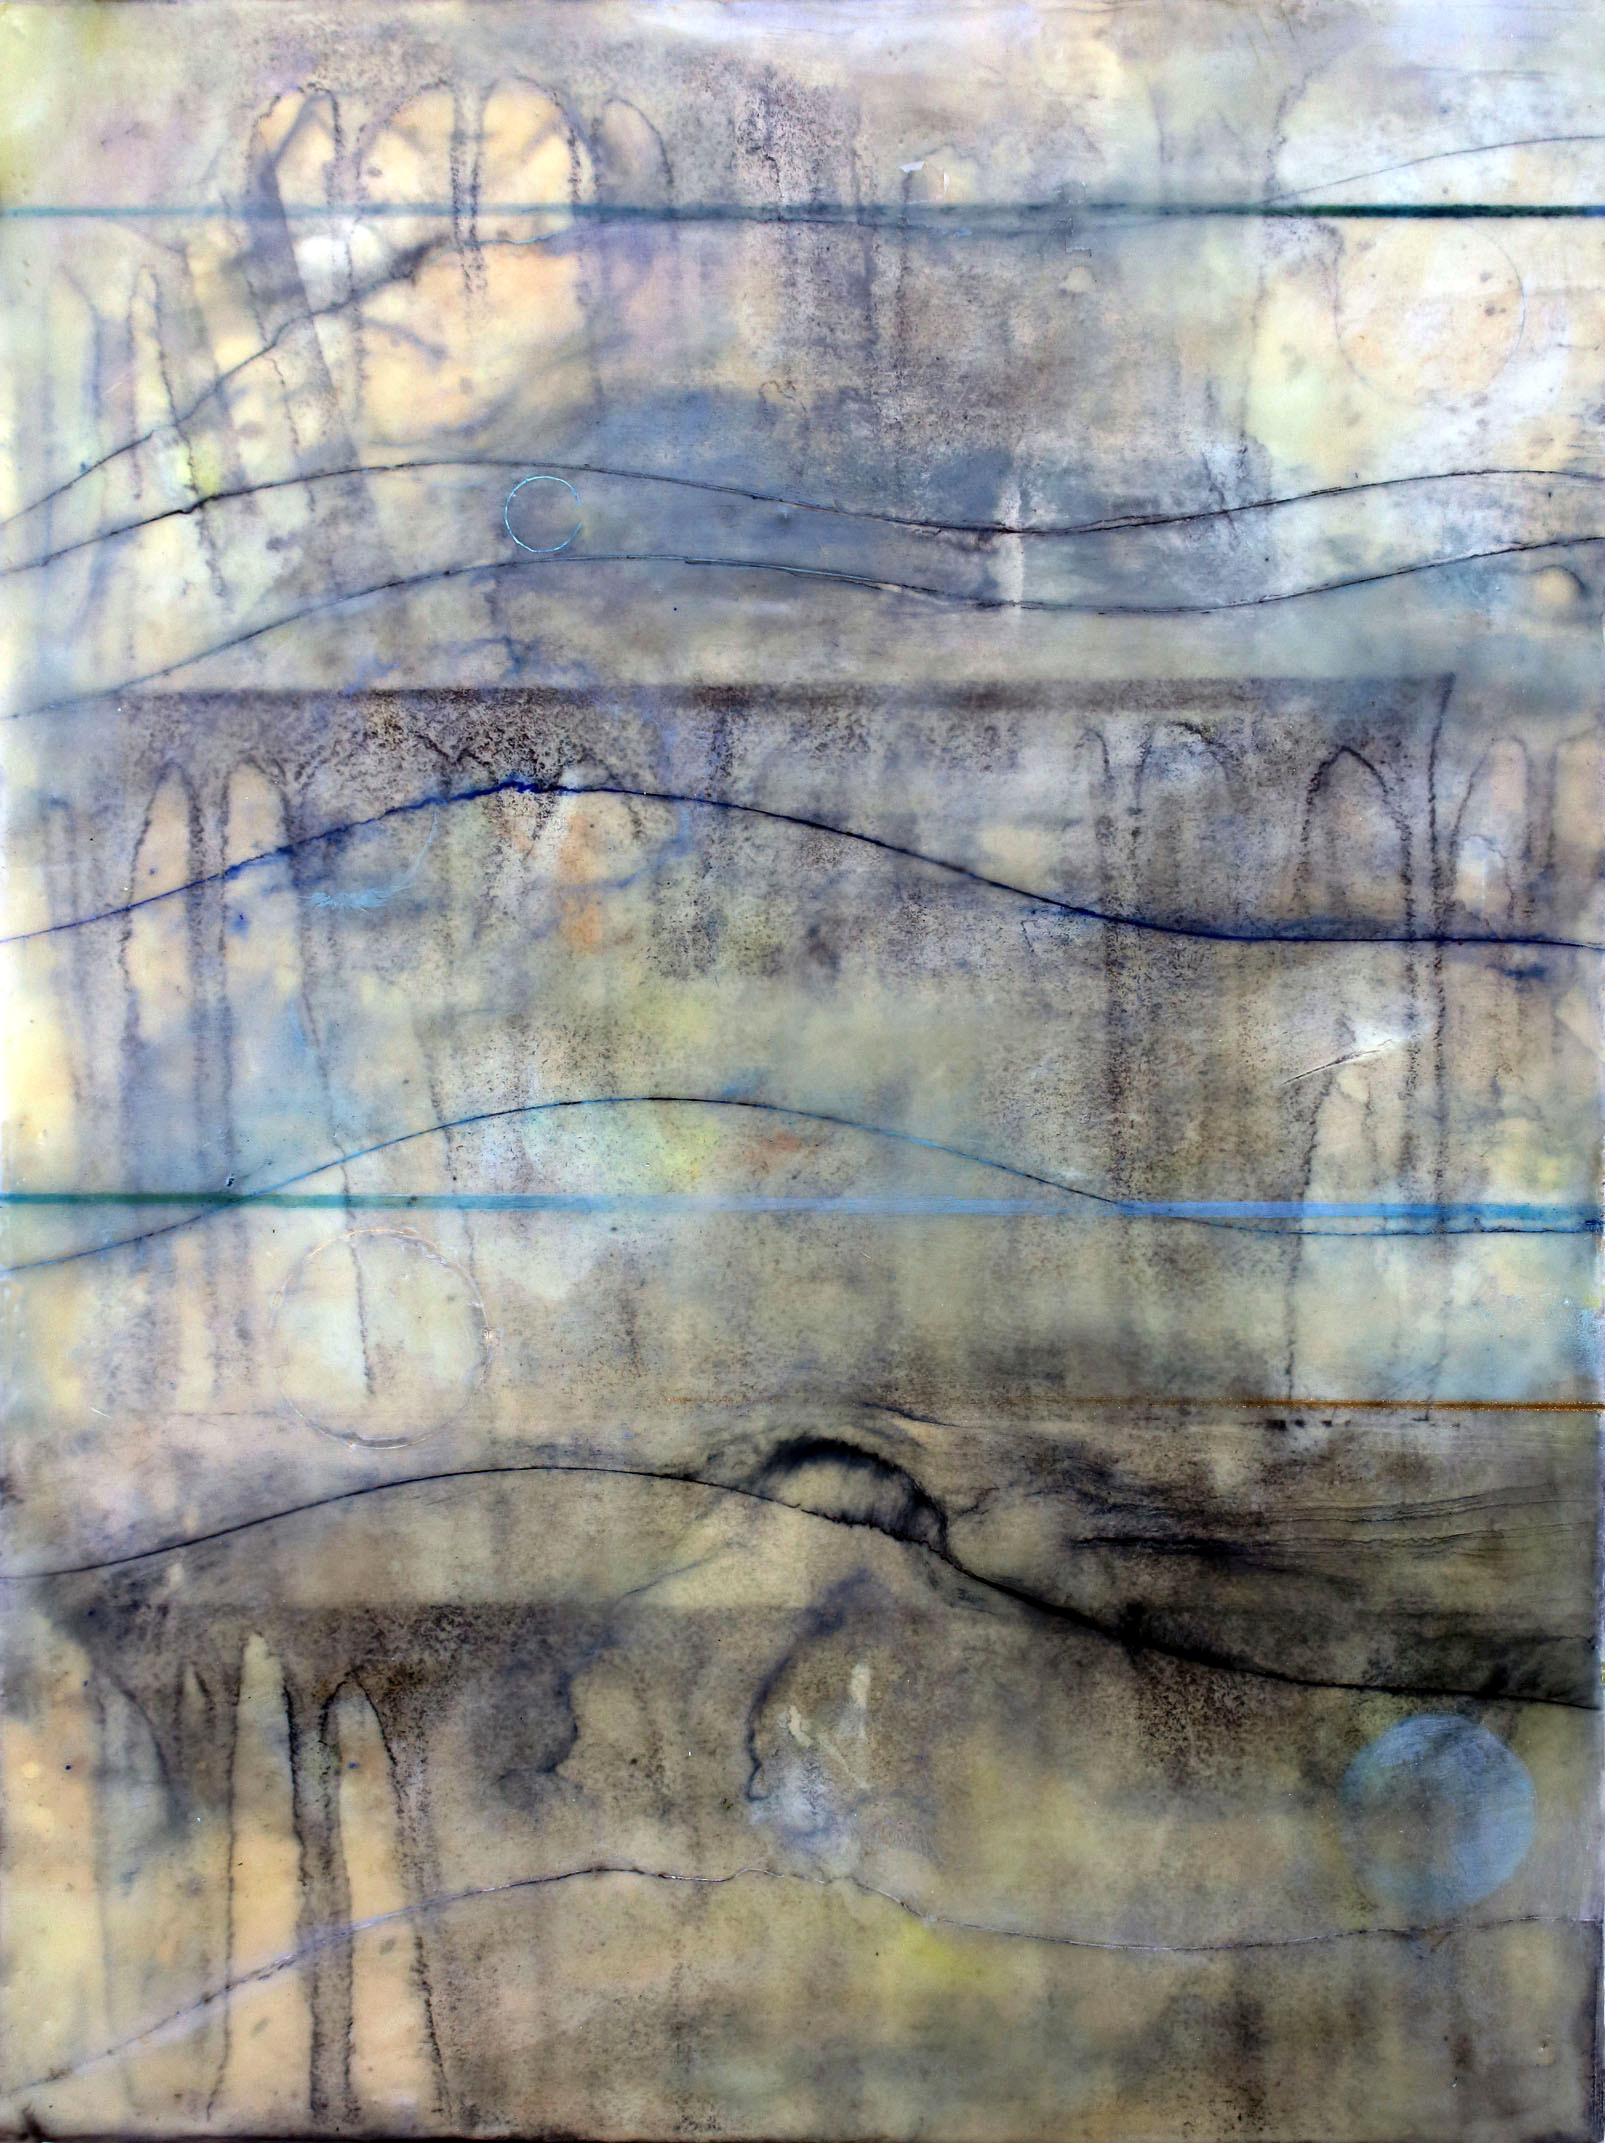 View Image Details HIGH TIDE, 2014, Oil paints, powdered graphite, powdered pigments, inks, encaustic on paper mounted on birch panel,